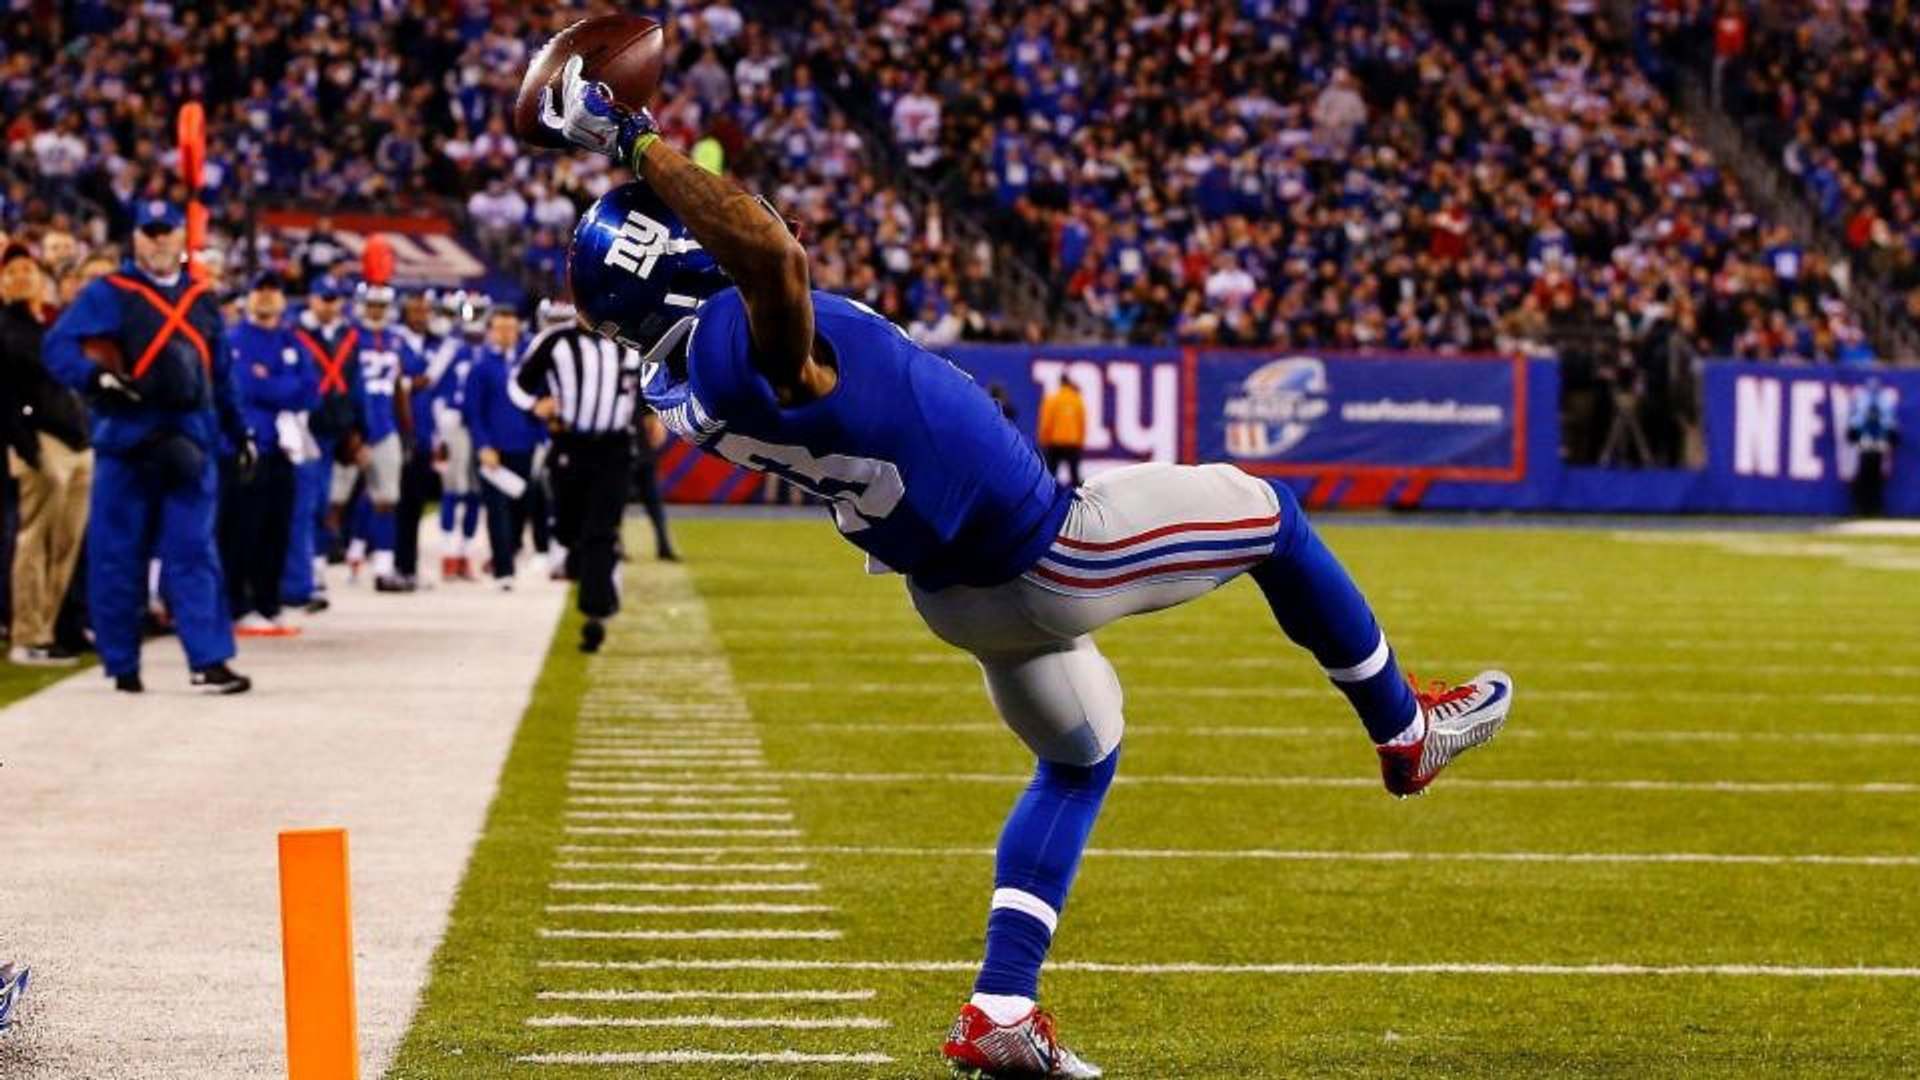 Odell Beckham Jr. Makes 33 1-Handed Catches in 1 Minute, Sets World Record